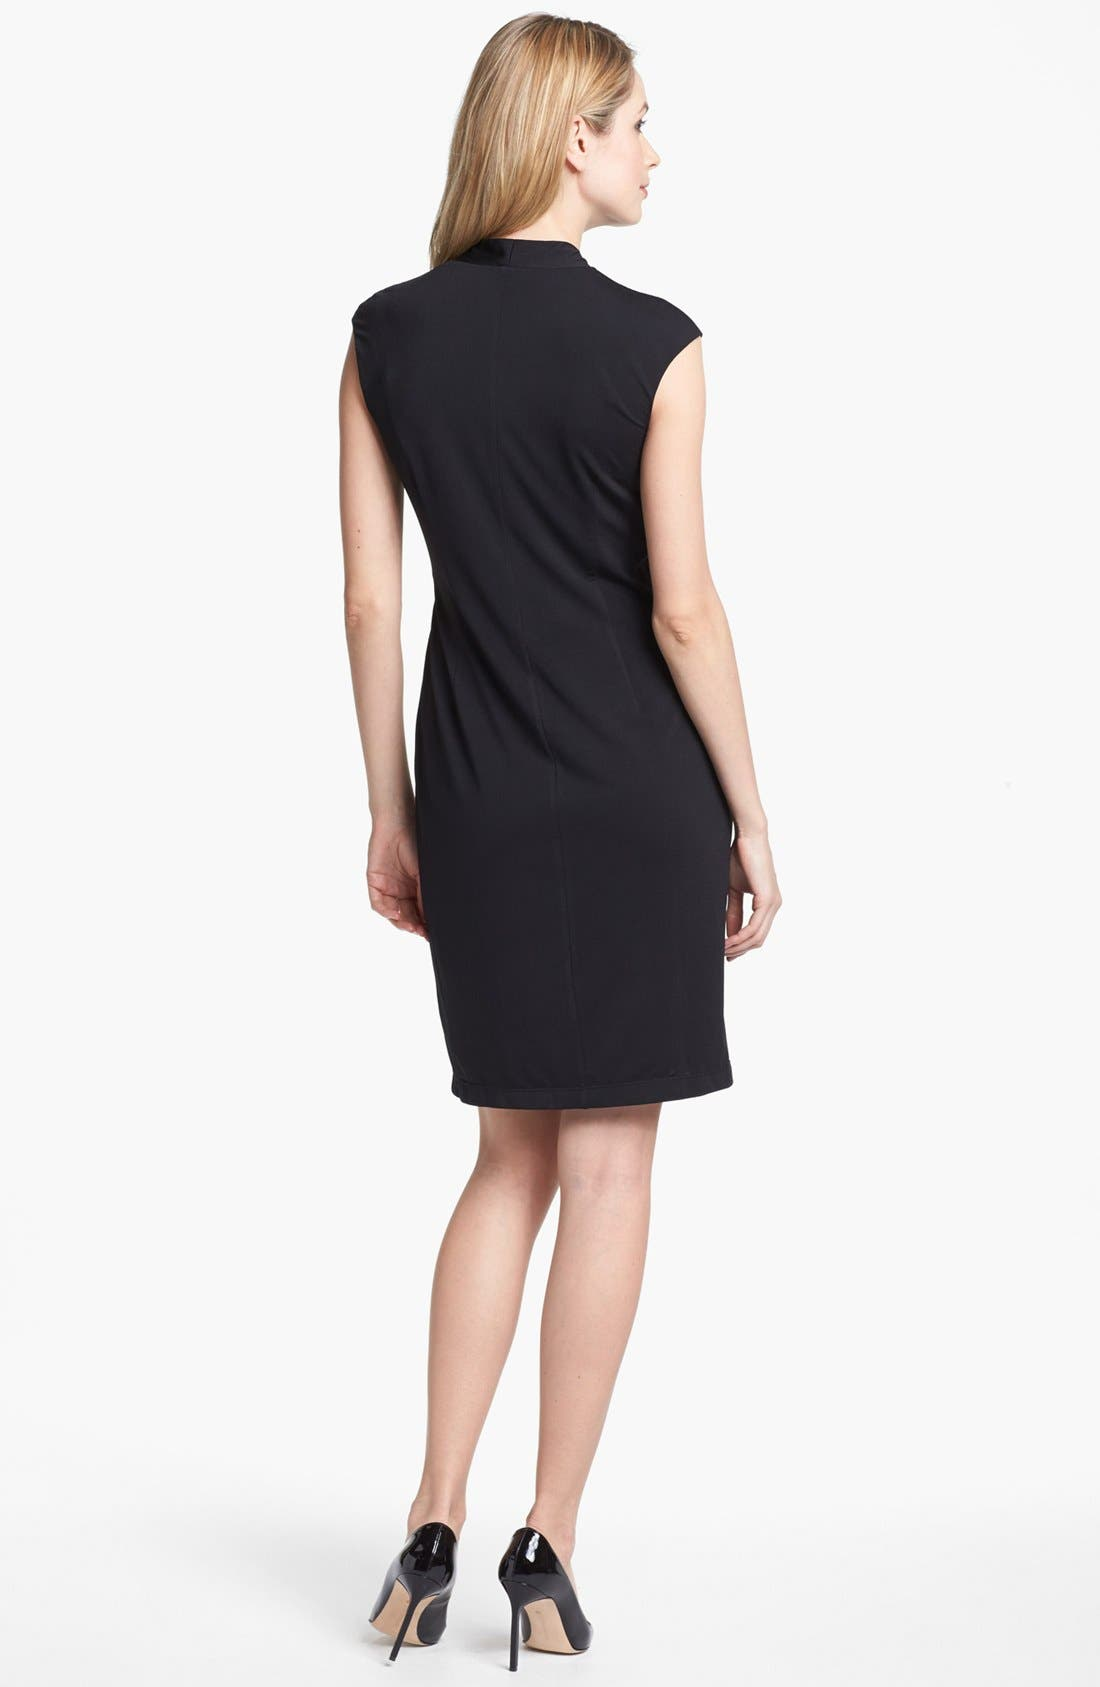 ELLEN TRACY, Ruched Jersey Sheath Dress, Alternate thumbnail 3, color, 001